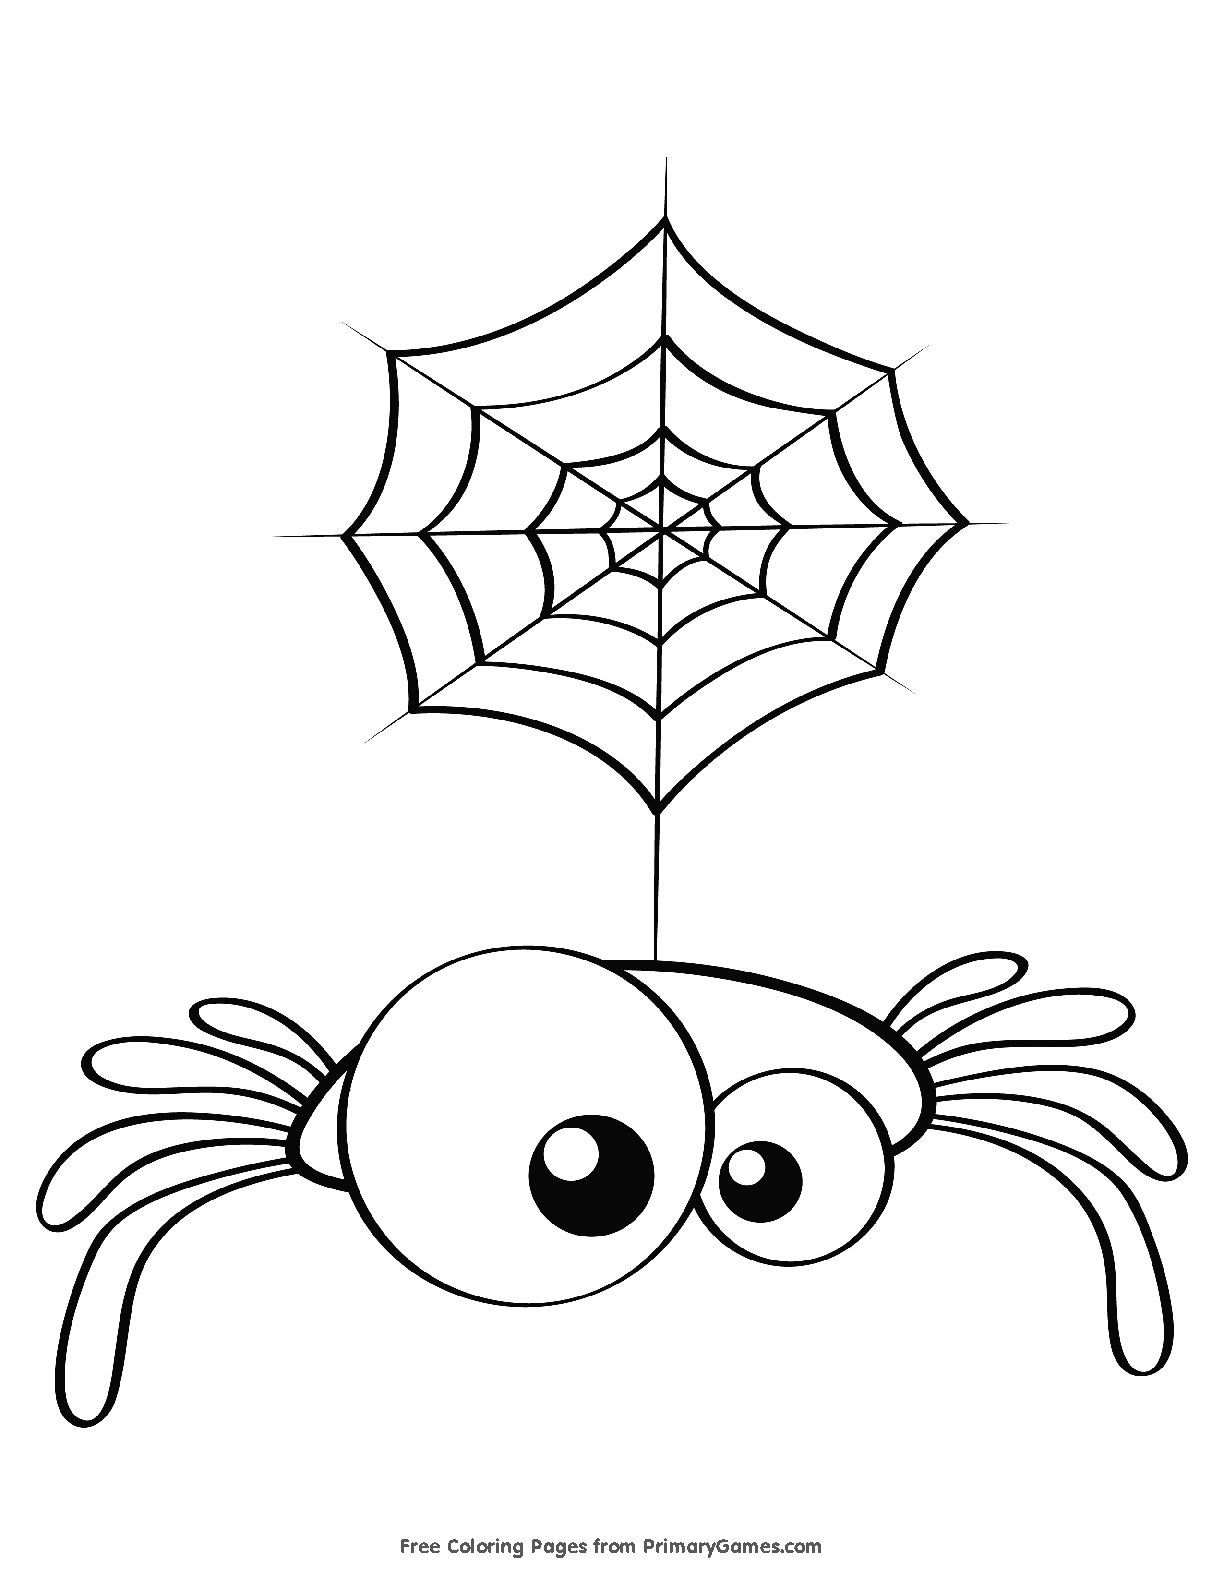 Halloween Spider Web Coloring Pages Free Spiderman Page Sheet Printable To Print Colouring Pin By On Bear Pumpkin Grape Childrens Bible Pokemon Pikachu